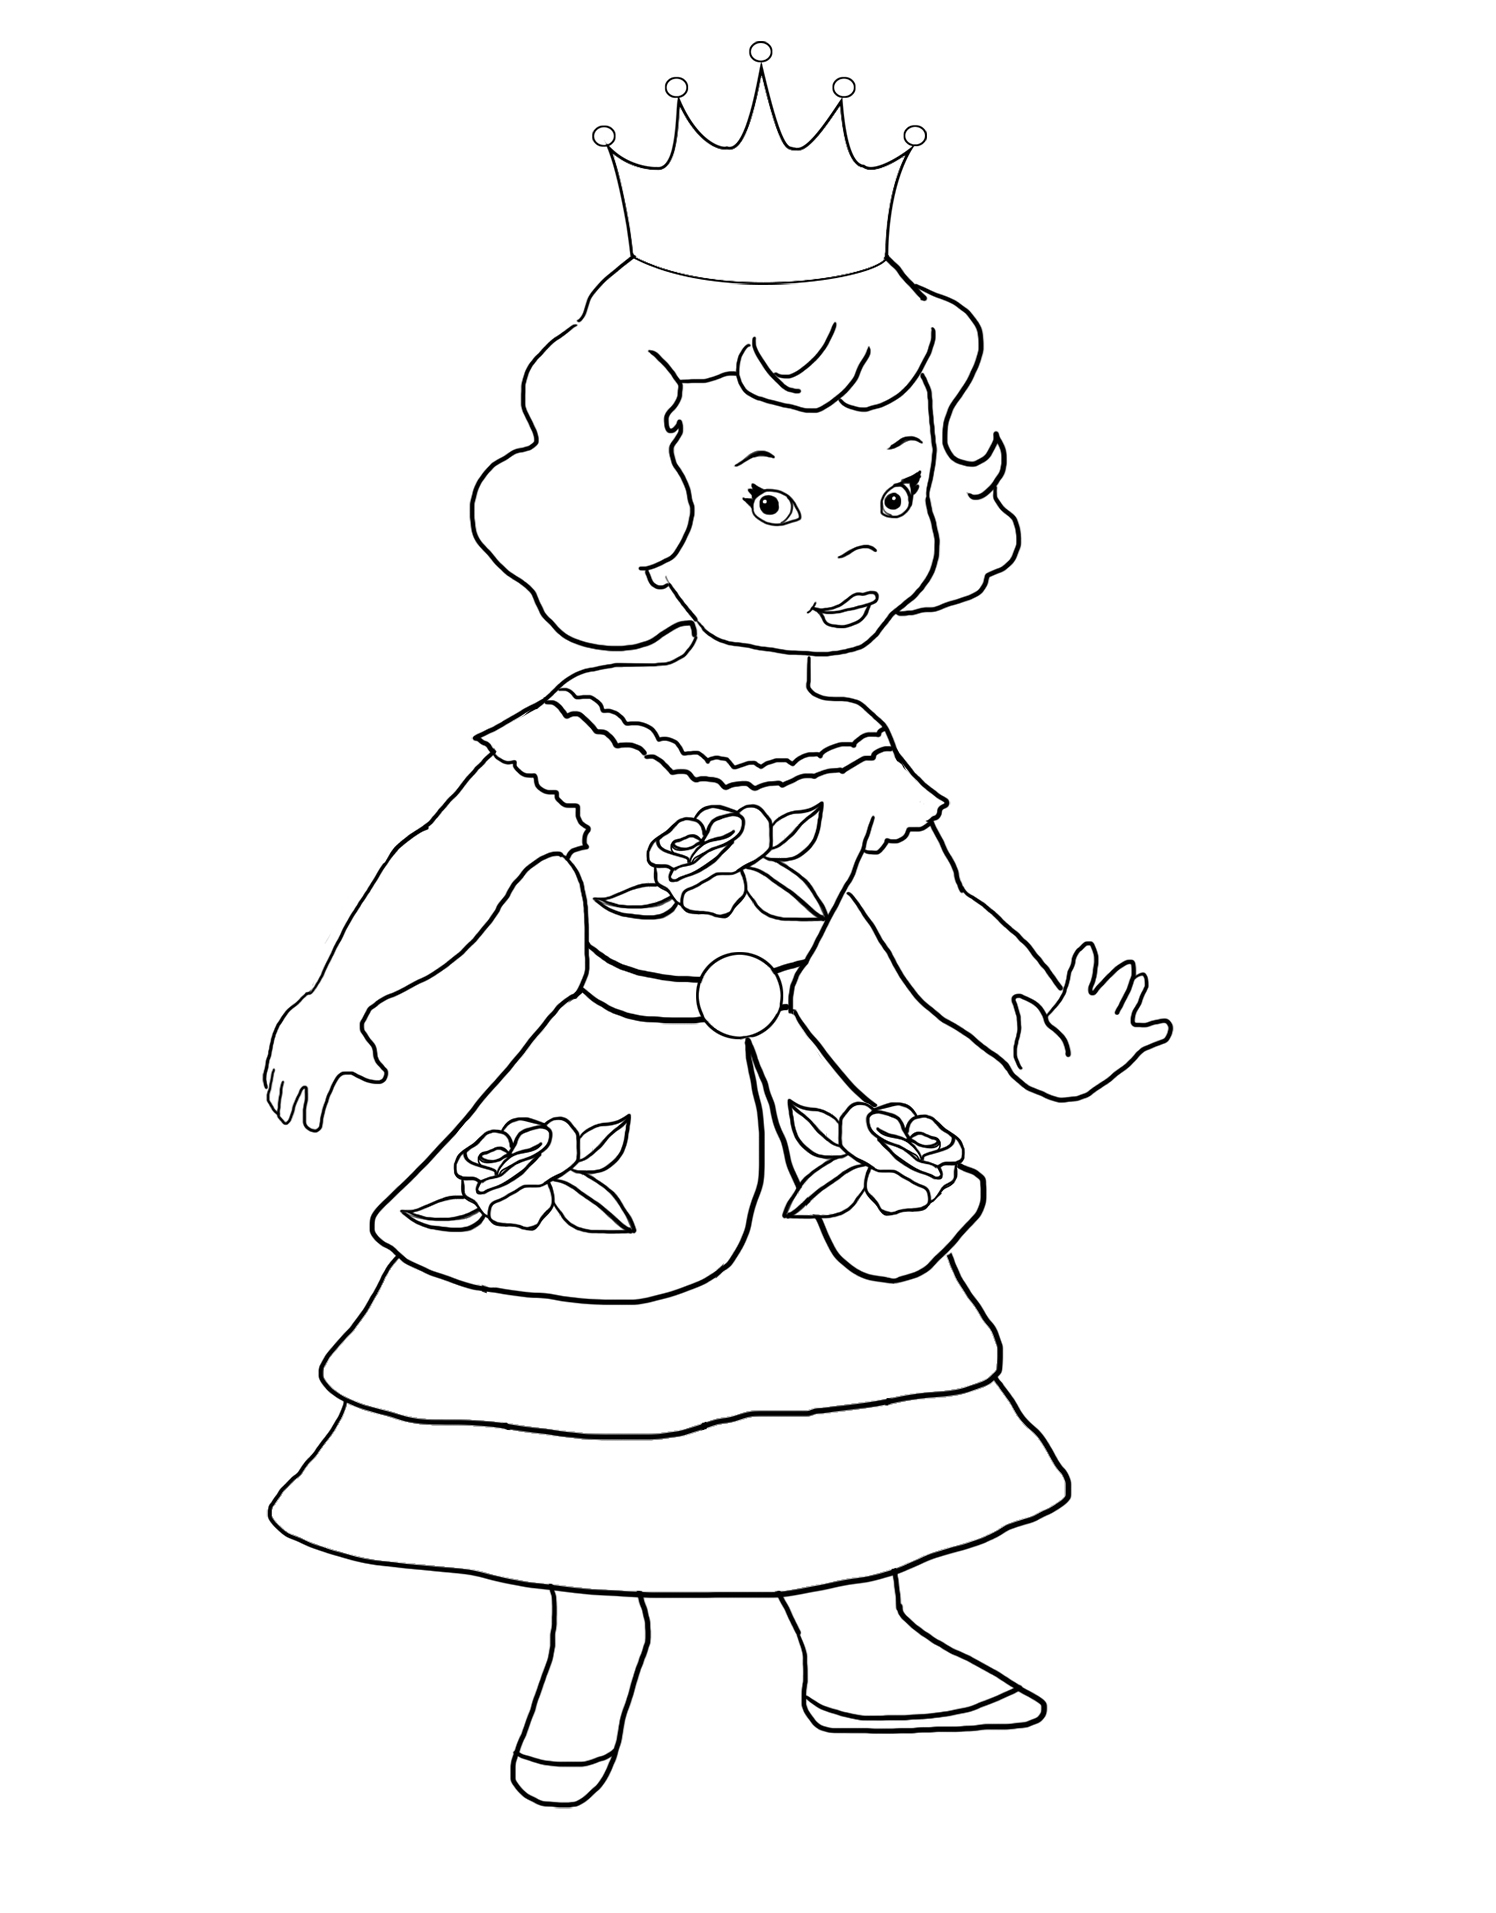 coloring page little princess rose dress